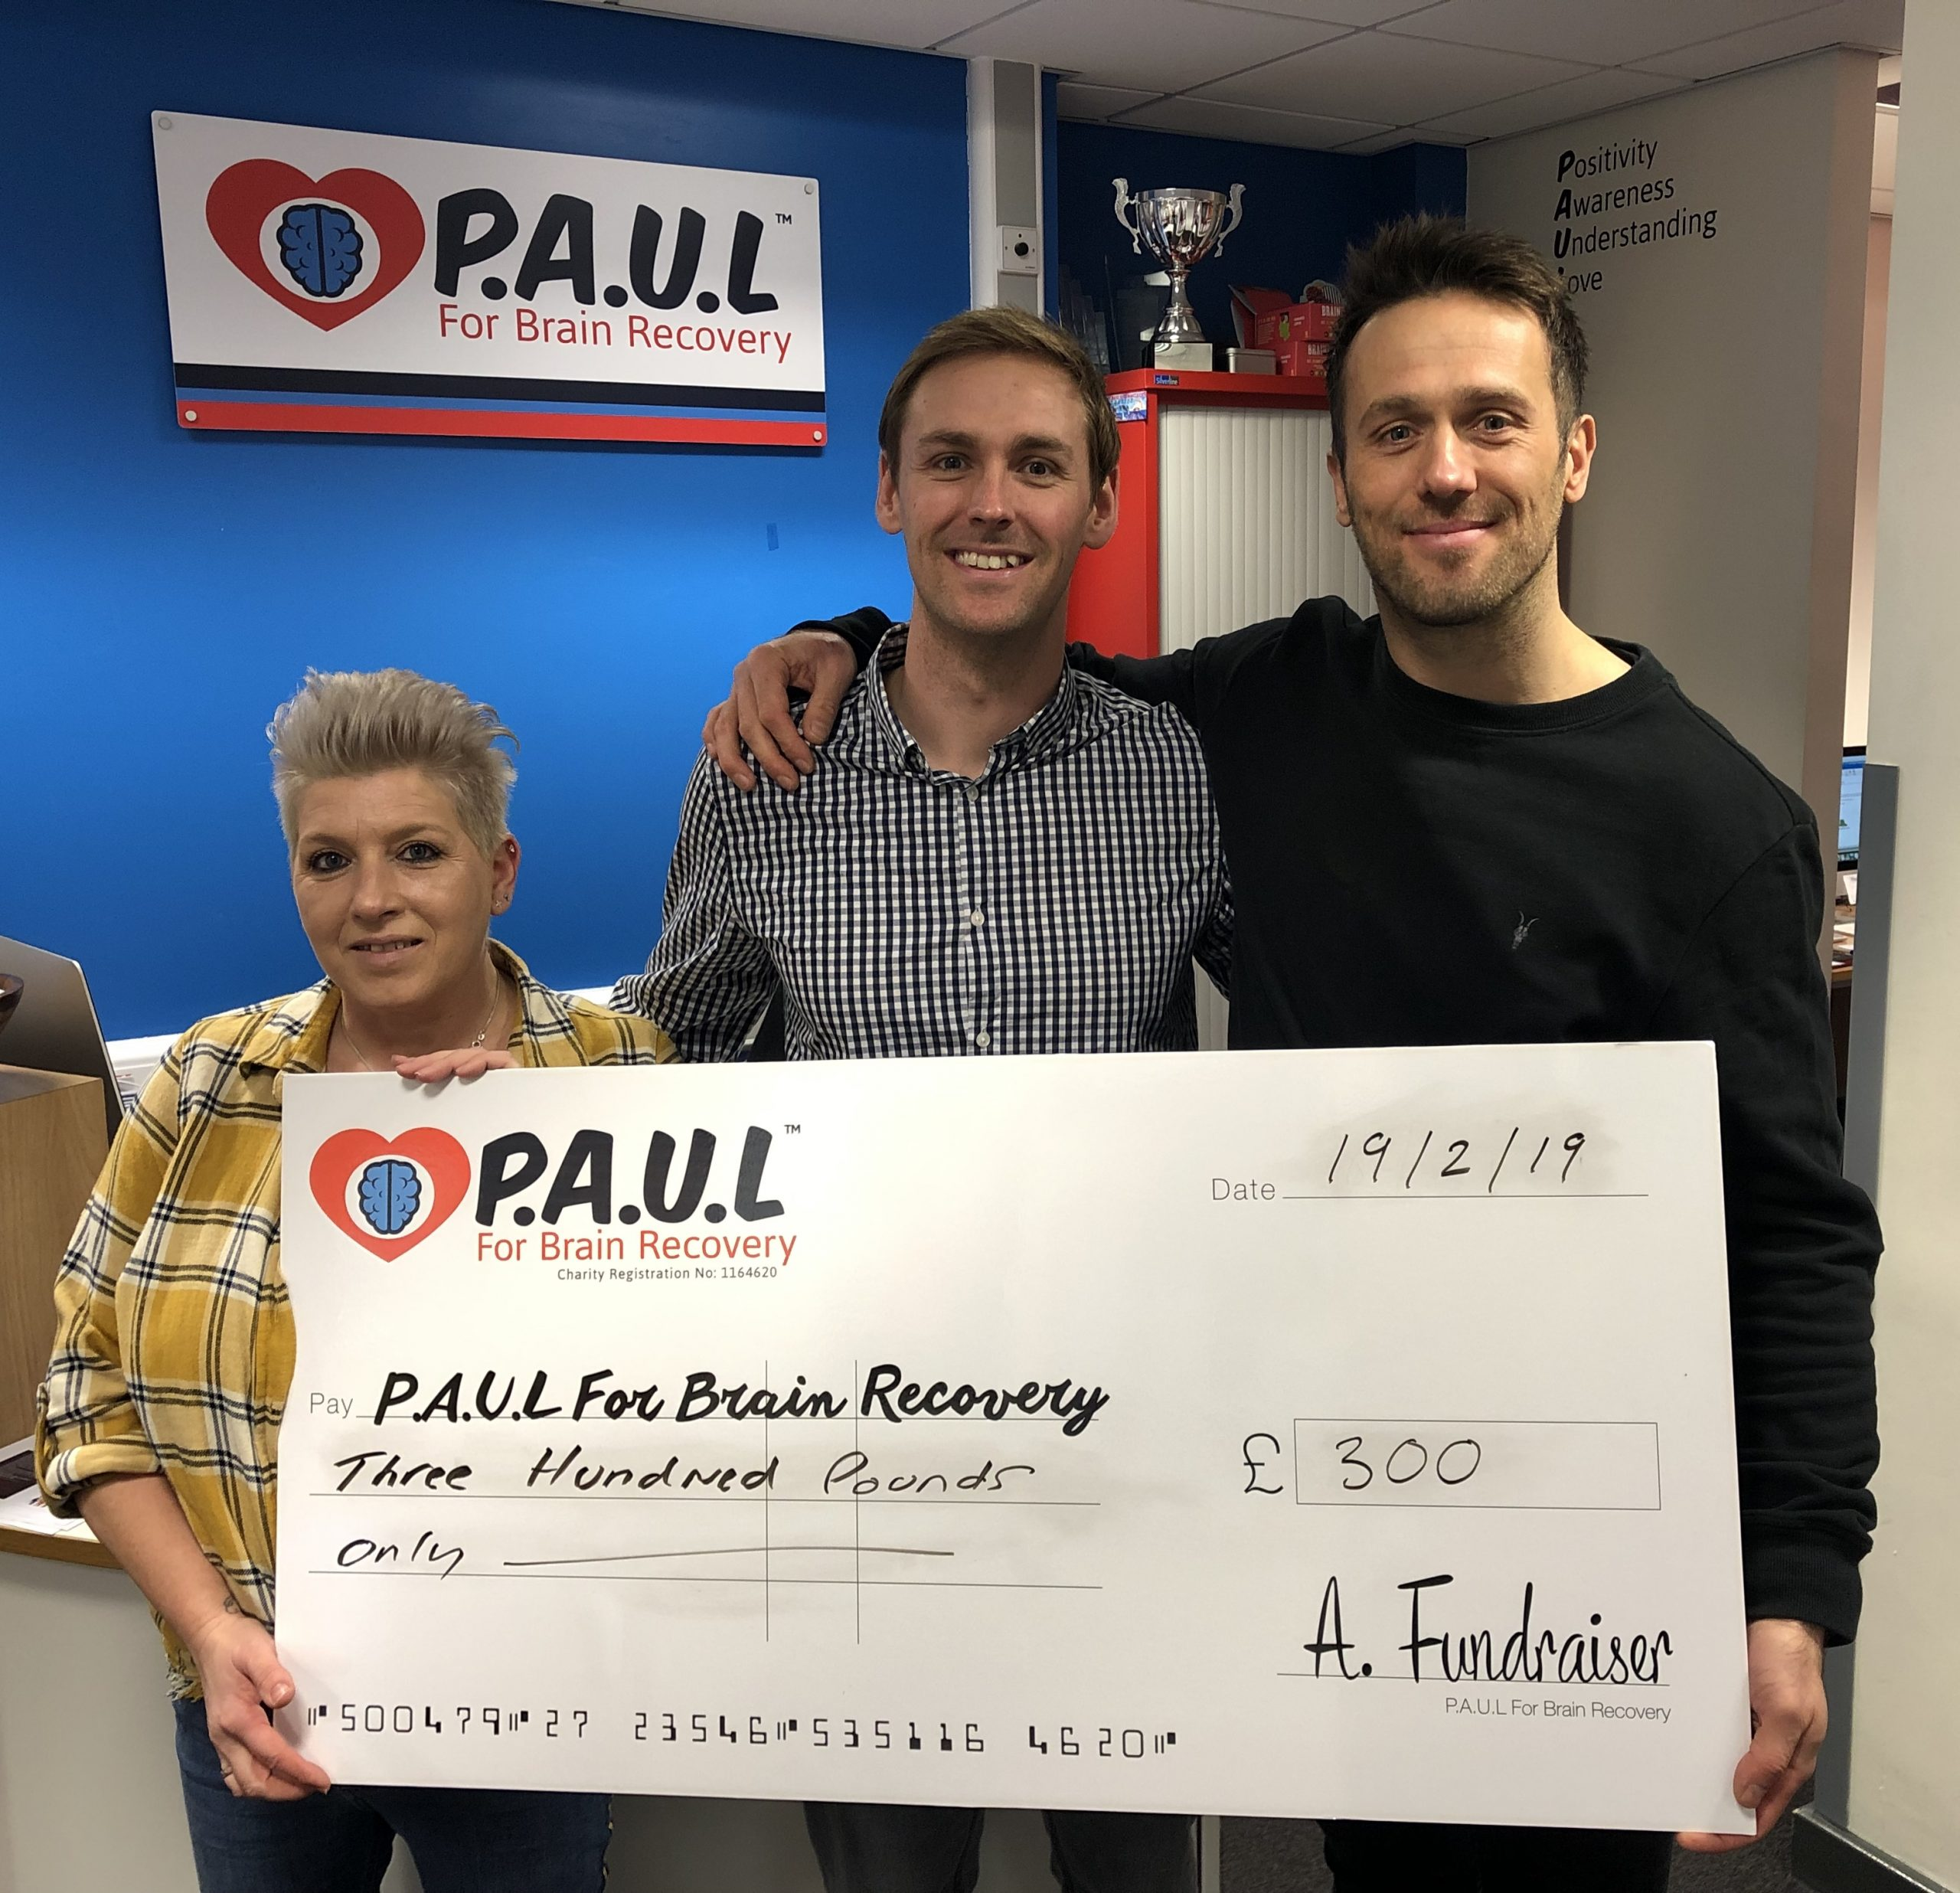 paul for brain recovery fundraising